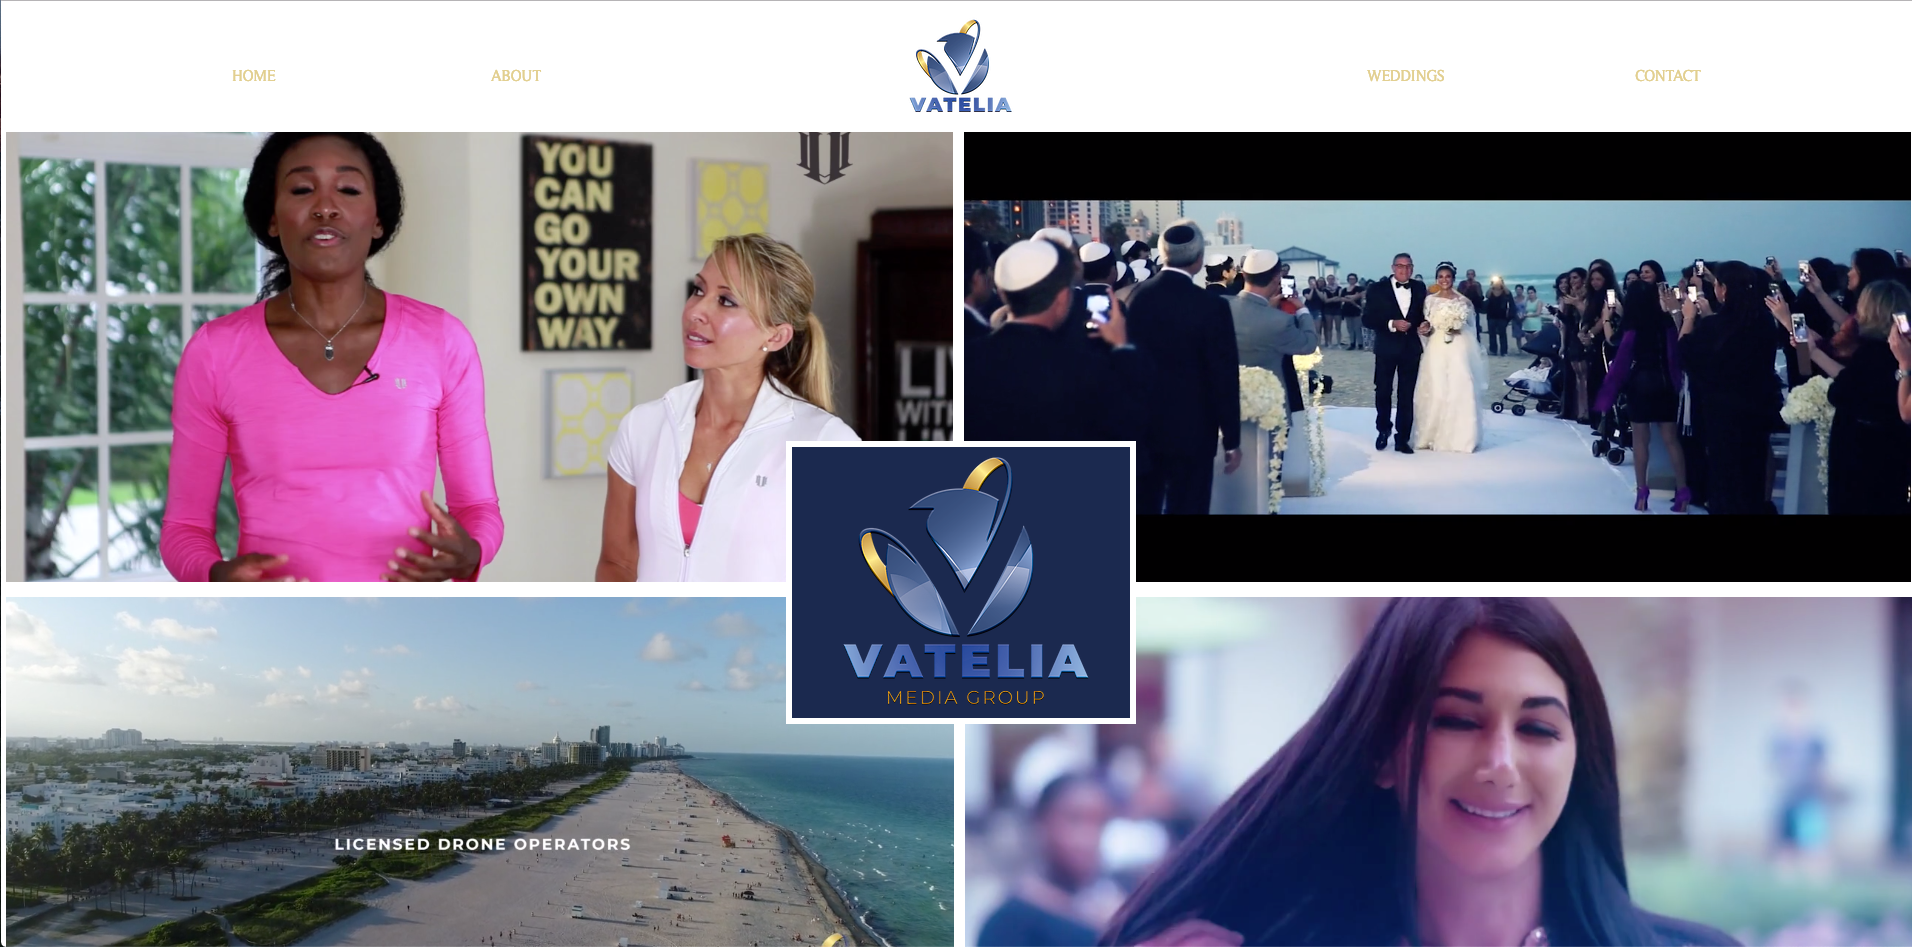 Vatelia Media Group